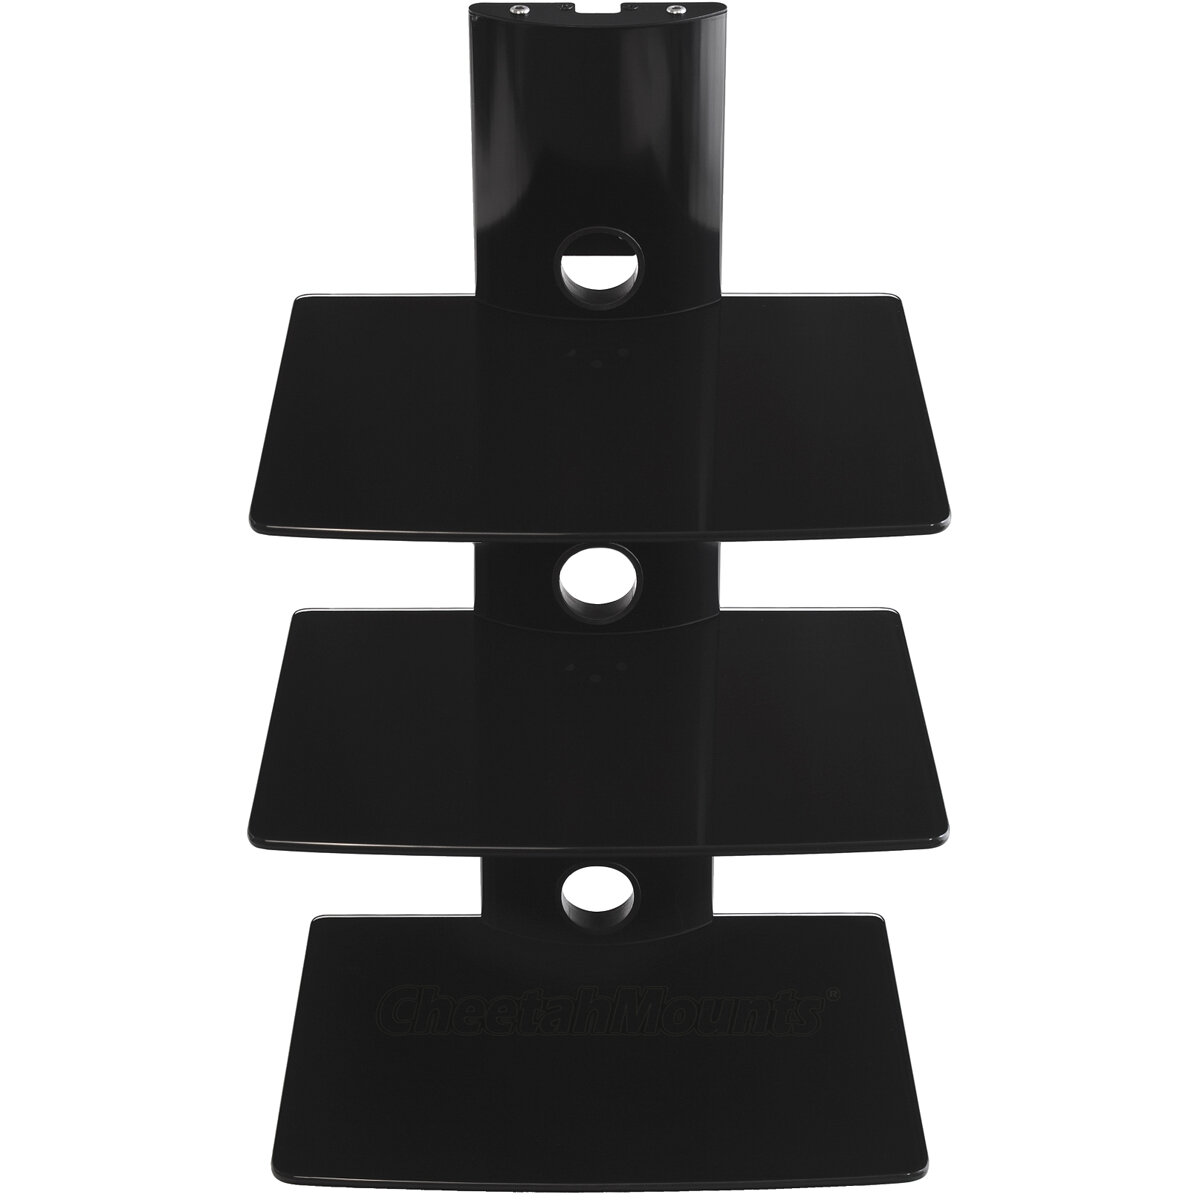 Cheetah Mounts Tv Component Wall Mount Shelving Bracket Wayfair